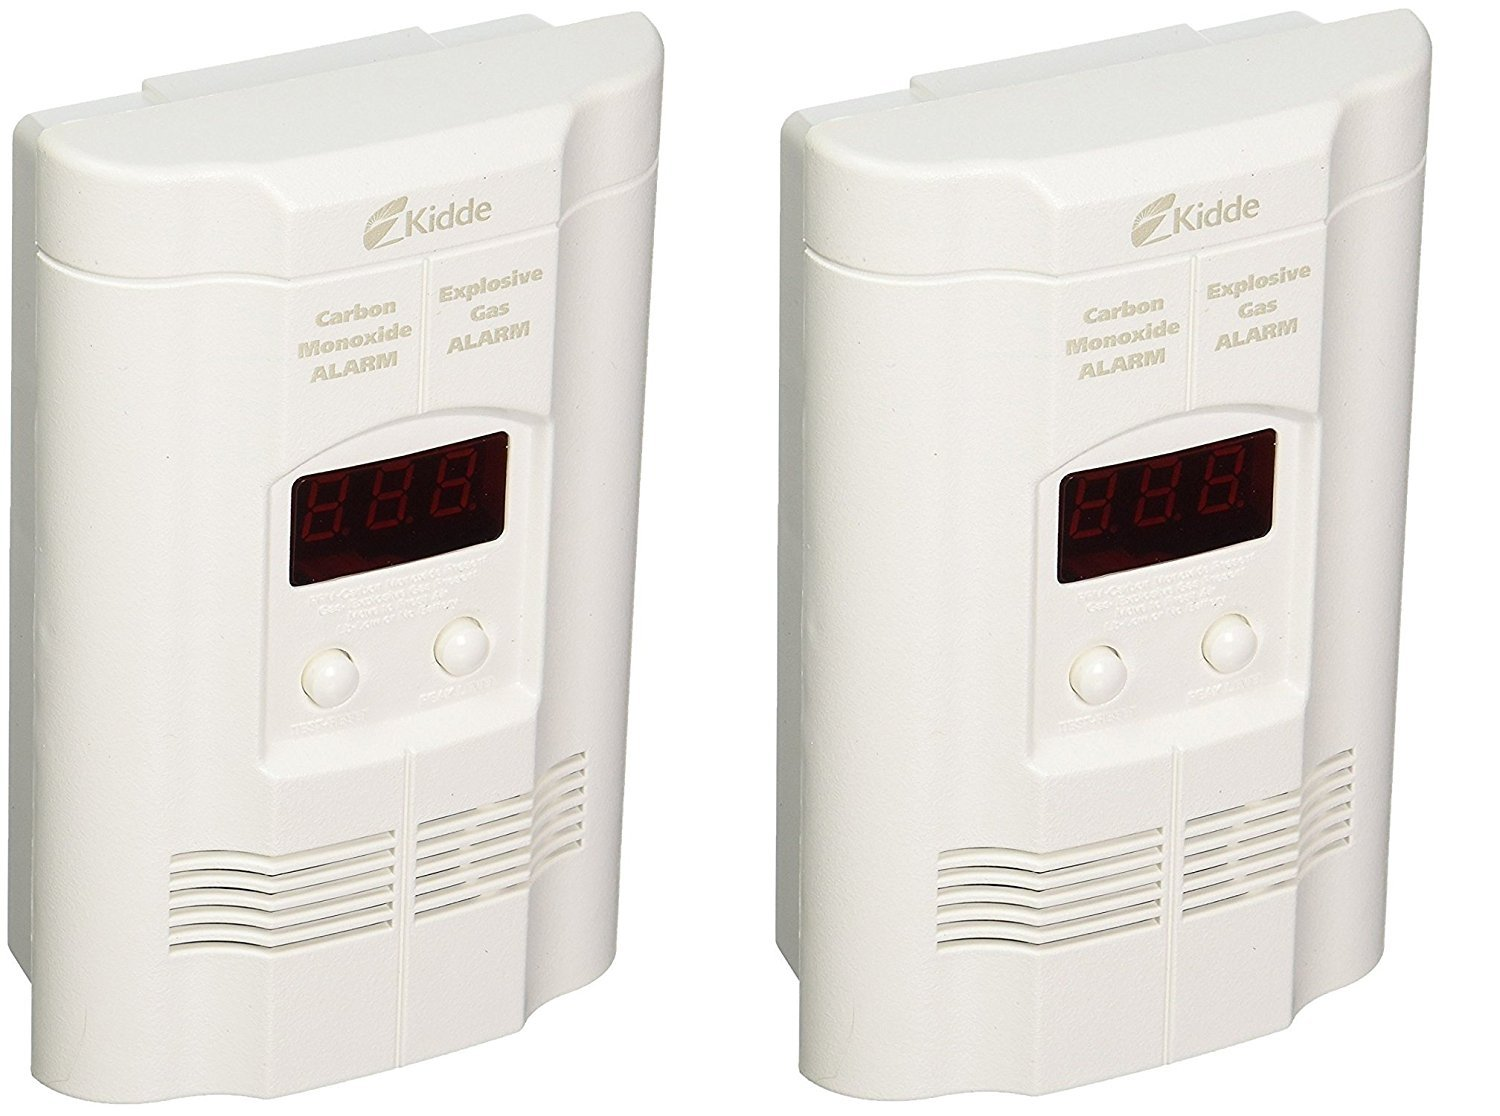 Kidde KN-COEG-3 Nighthawk Plug-In Carbon Monoxide and Explosive Gas Alarm with Battery Backup (Pack of 2) by Kidde